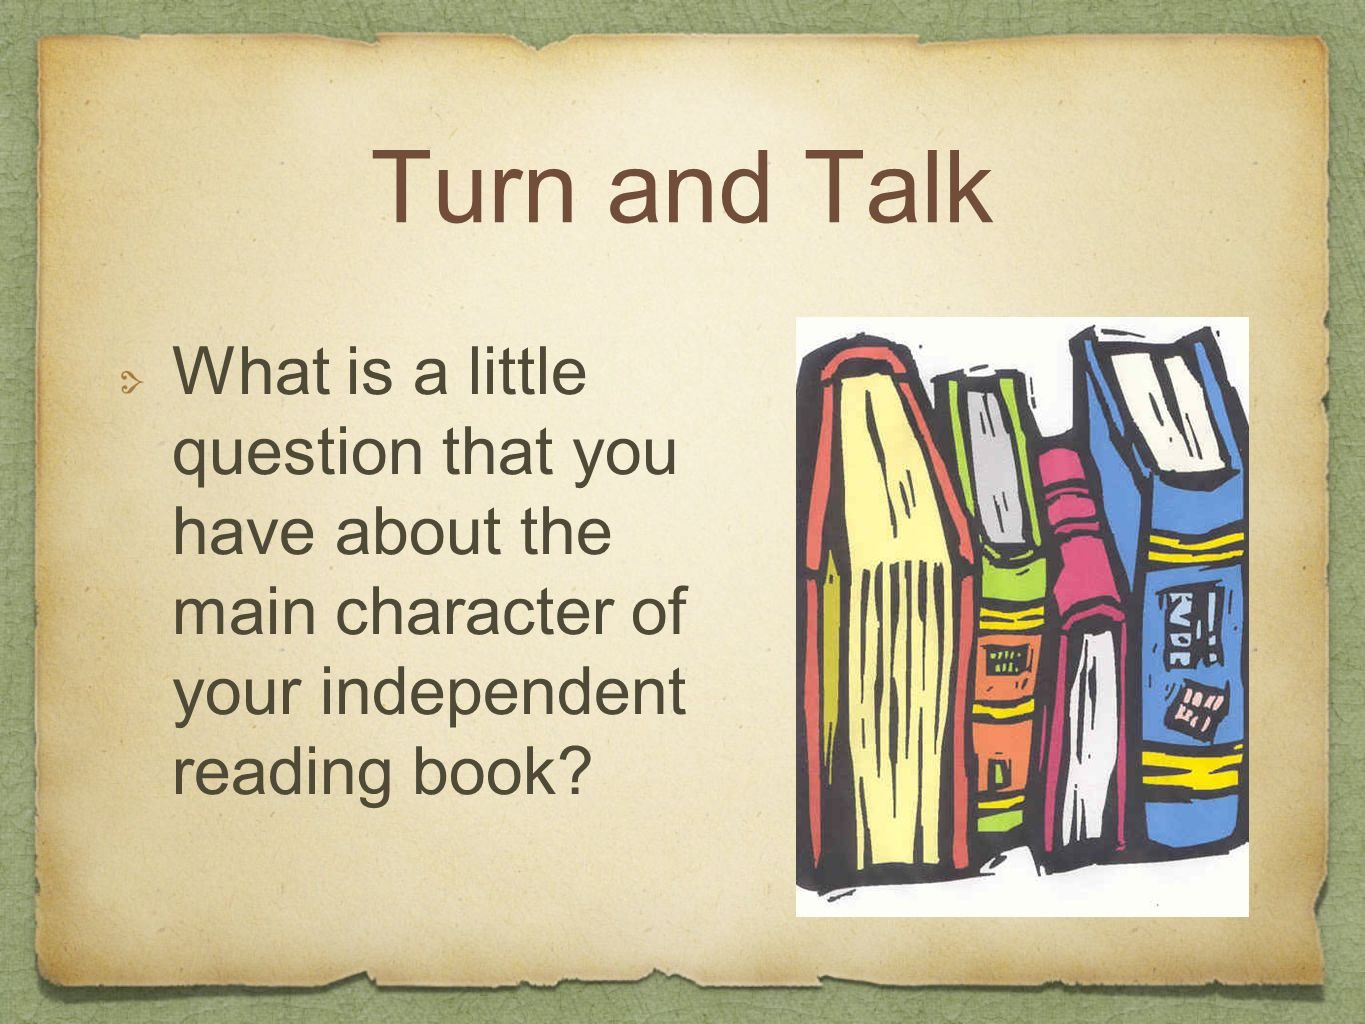 Turn and Talk What is a little question that you have about the main character of your independent reading book?